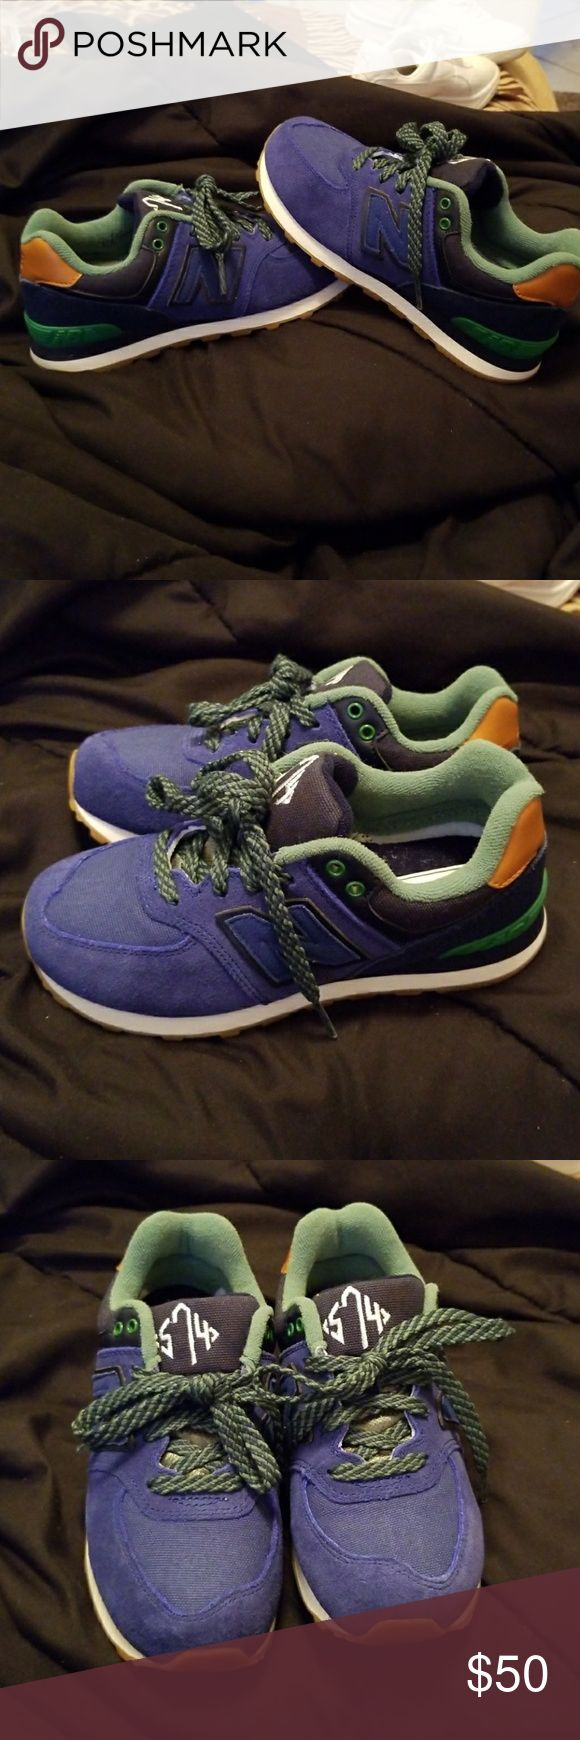 New never worn New Balance Sneakers! Brand new. Never worn. Tried on. Too small. Stored in closet without box so a little ruffled, but still excellent coi edition! Great tan leather makes them so Stylish! Perfect for fall! Exclusive! New Balance Shoes Sneakers